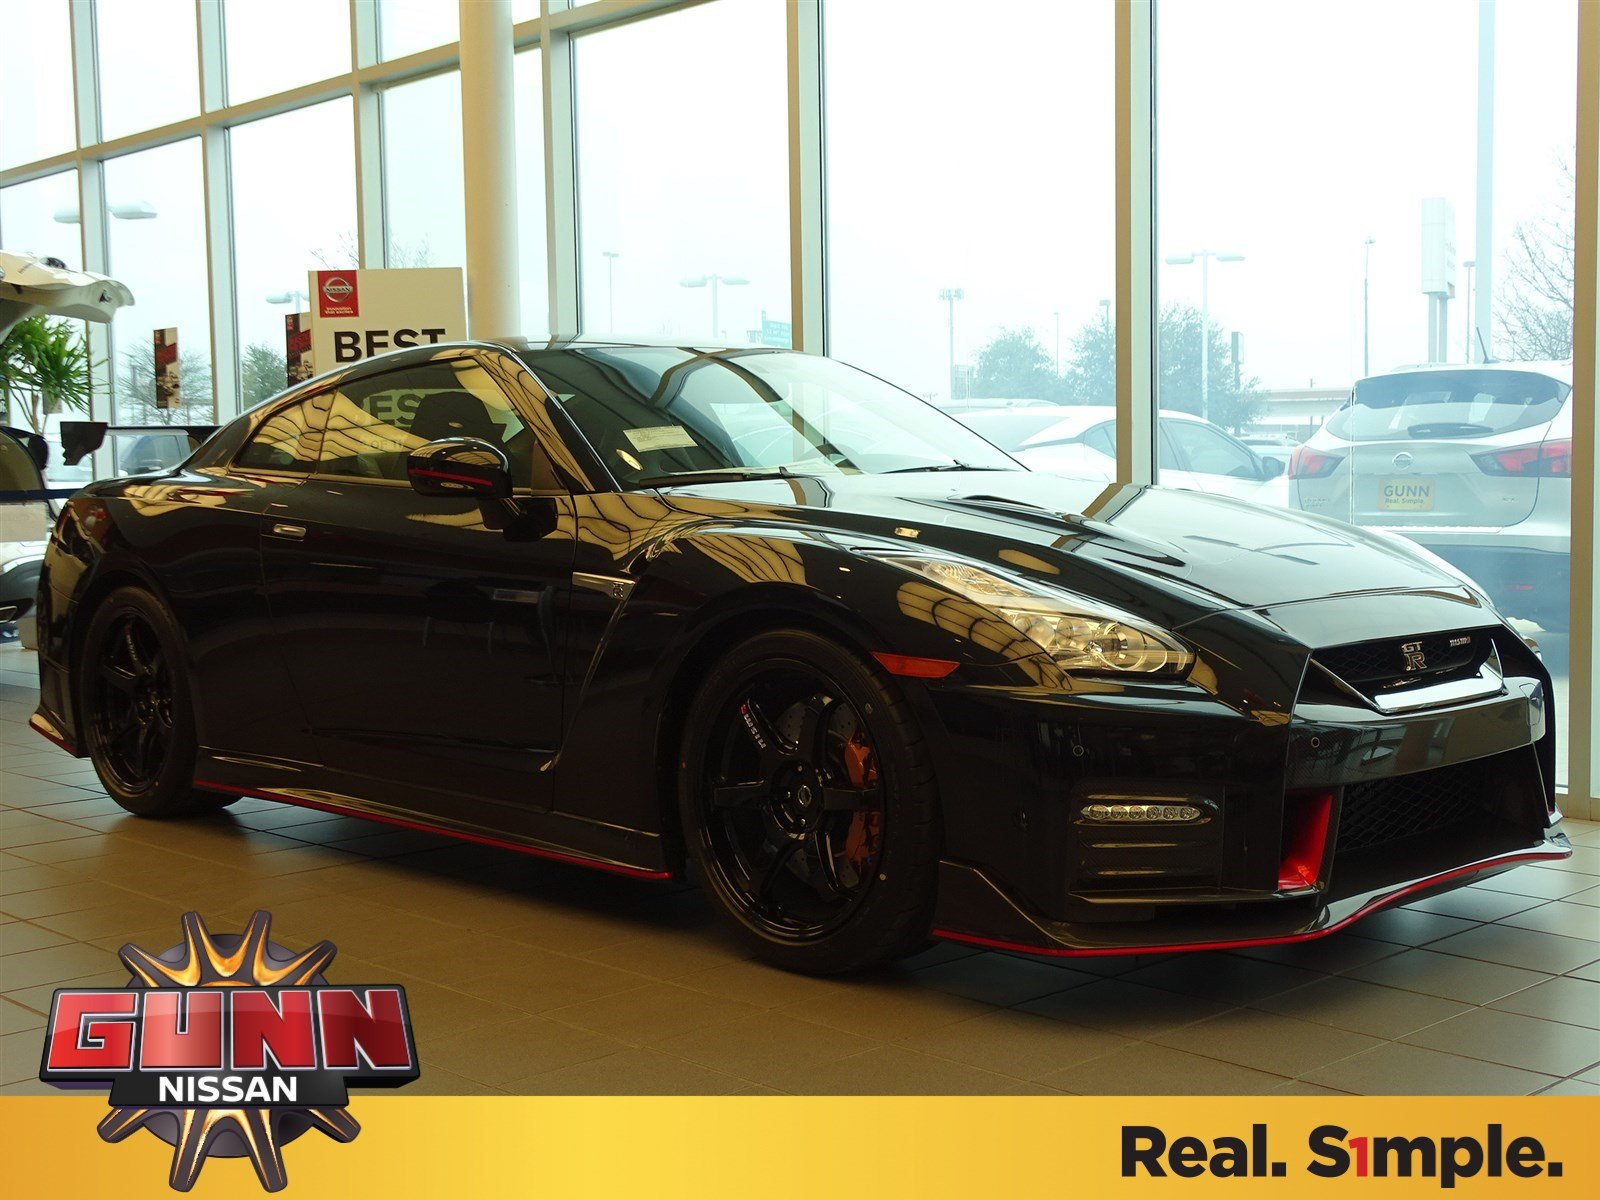 Used Nissan Gt-r for Sale Best Of Nissan Gt R for Sale Nationwide Autotrader